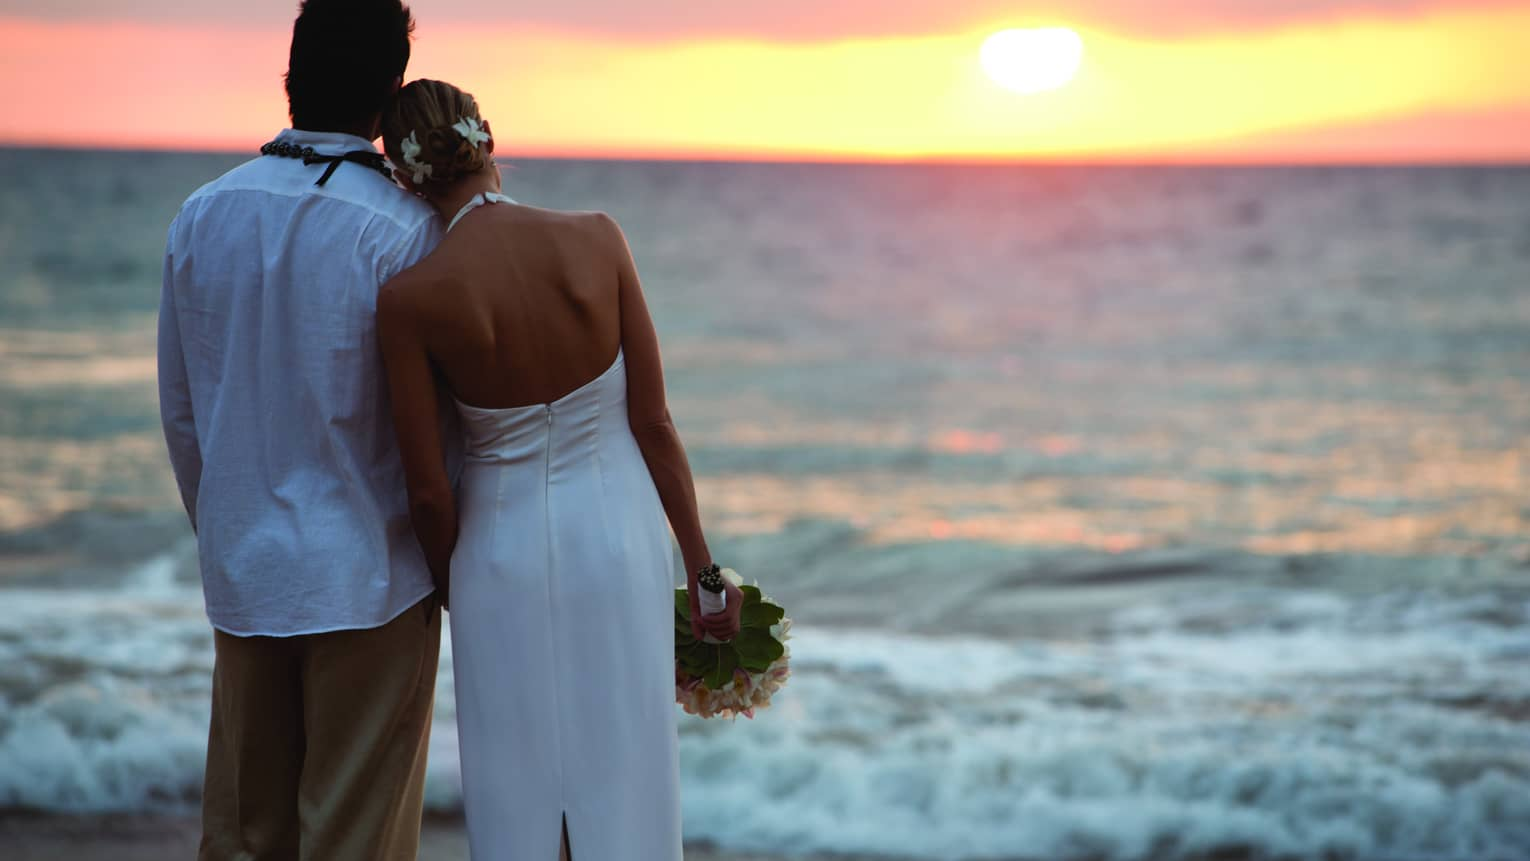 Back of groom and bride in white dress with bouquet look out over beach, sunset